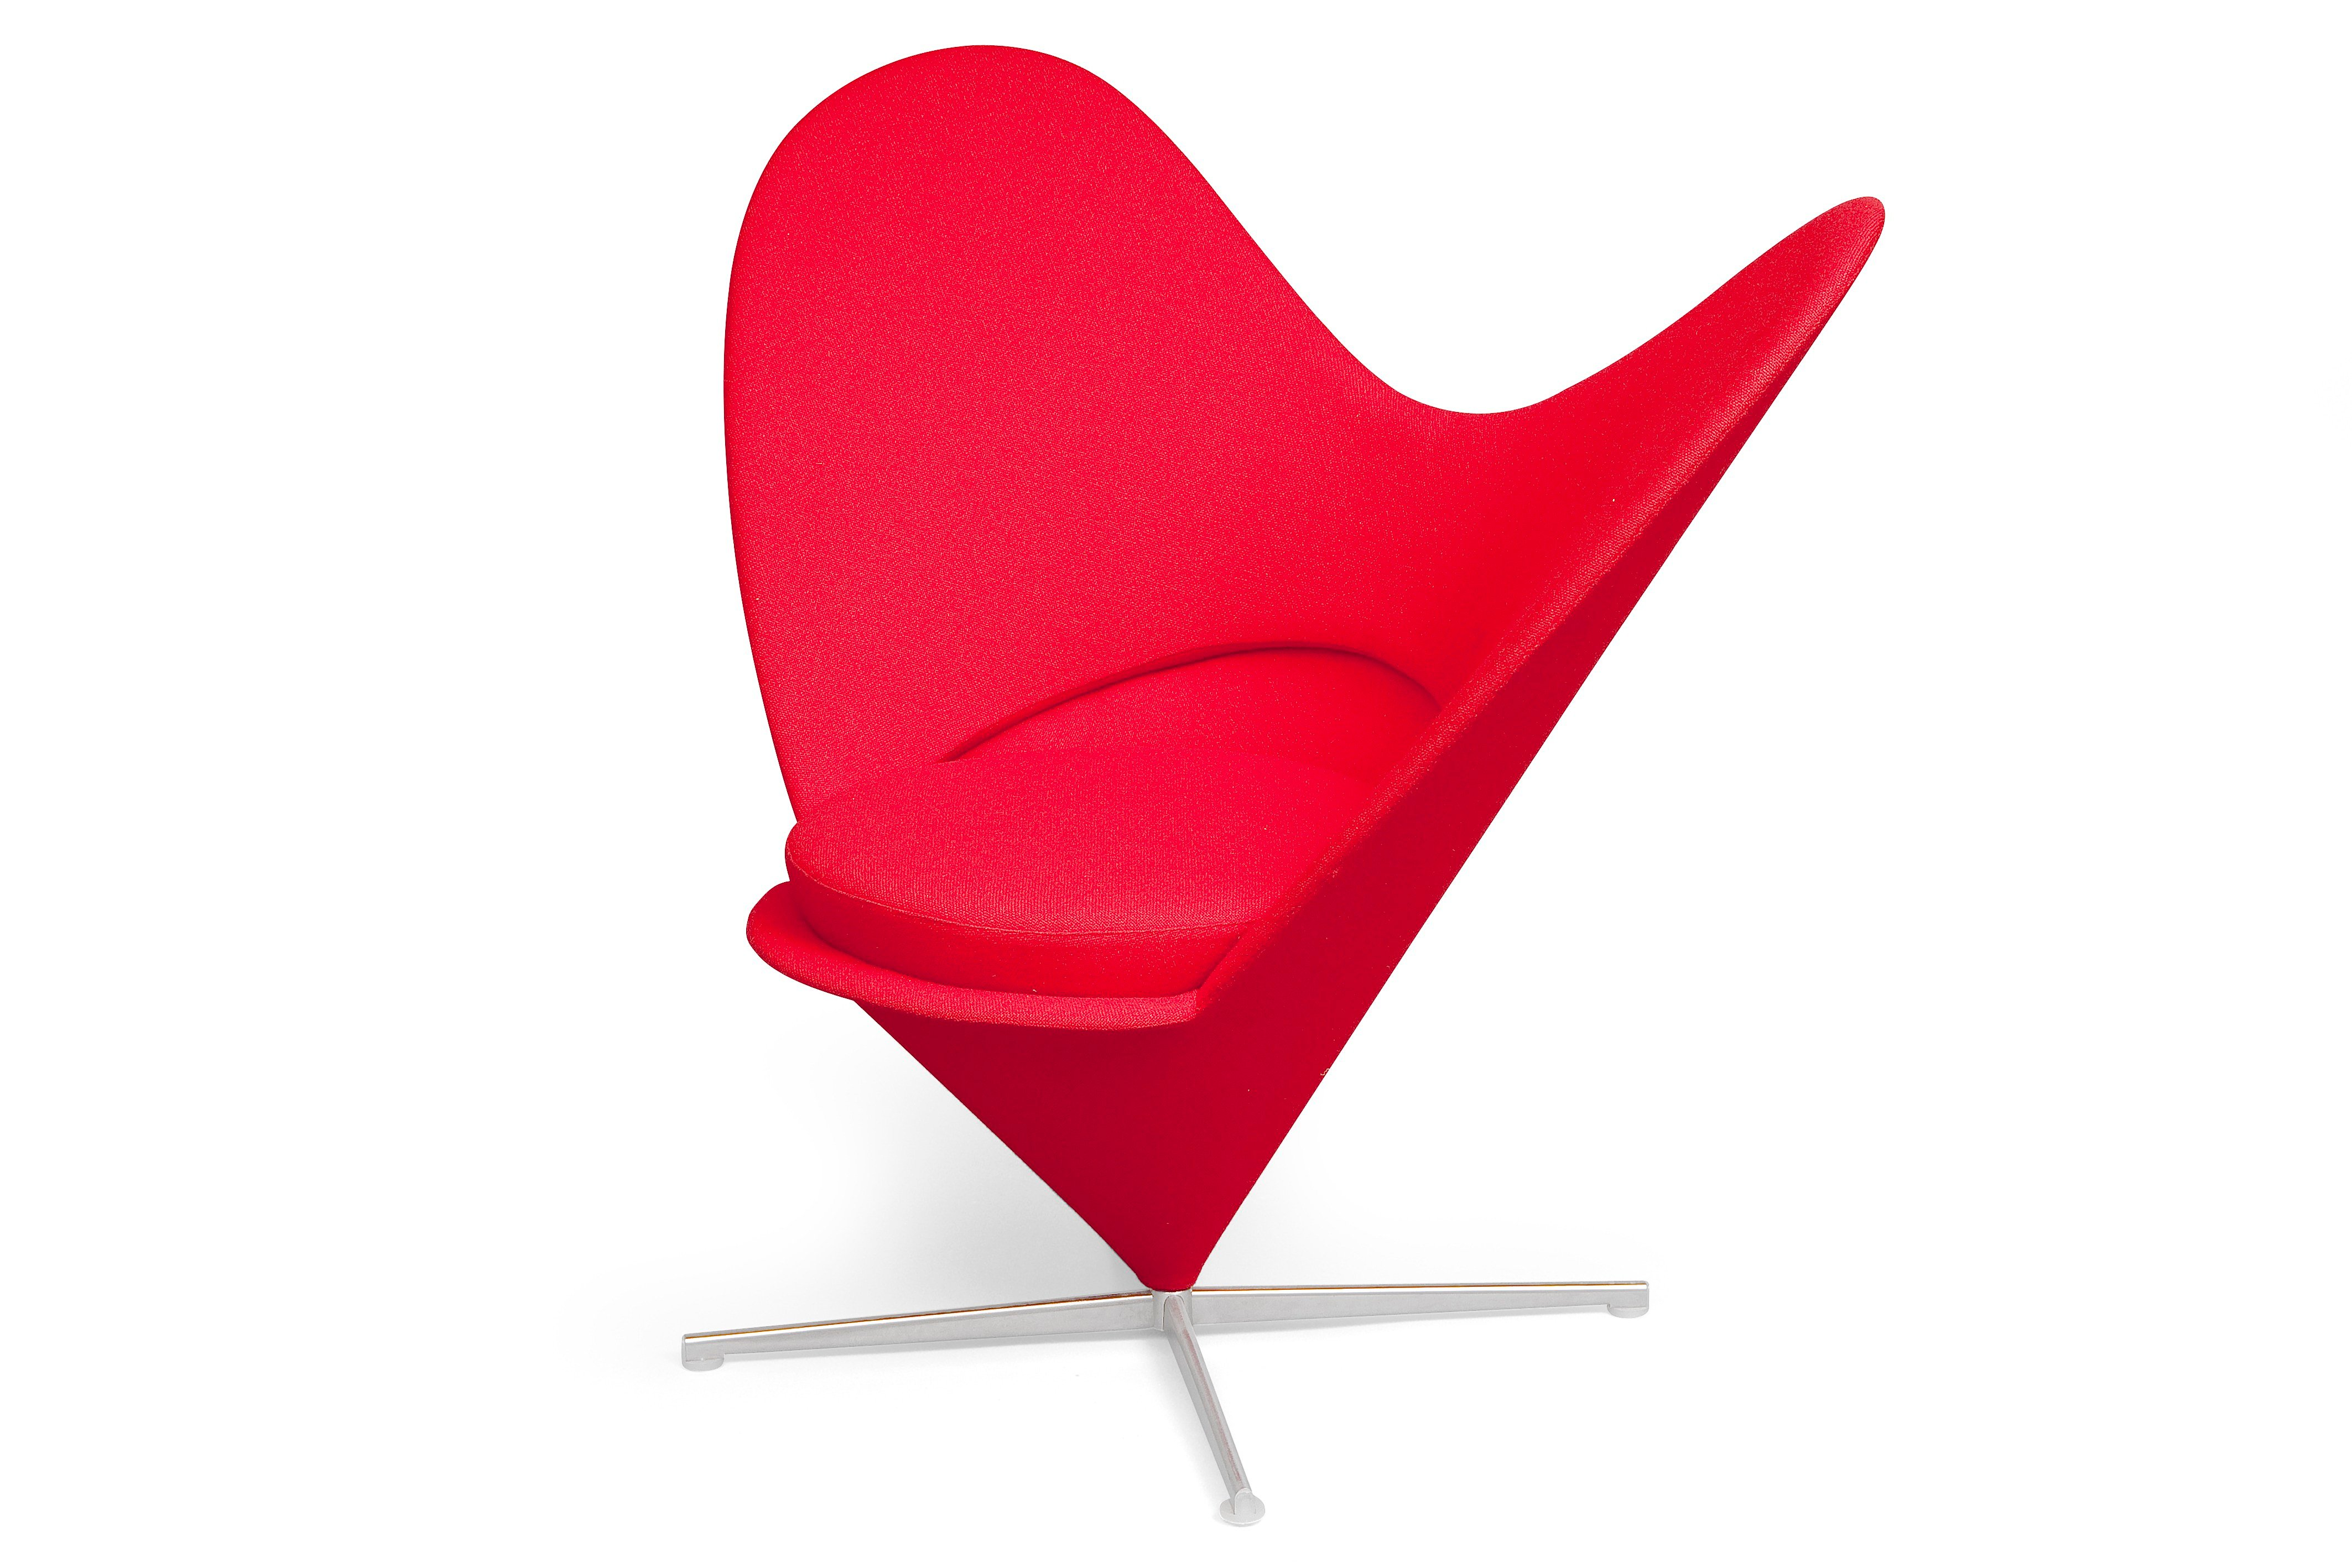 Verner panton heart cone chair bukowskis for Chaise vitra bureau